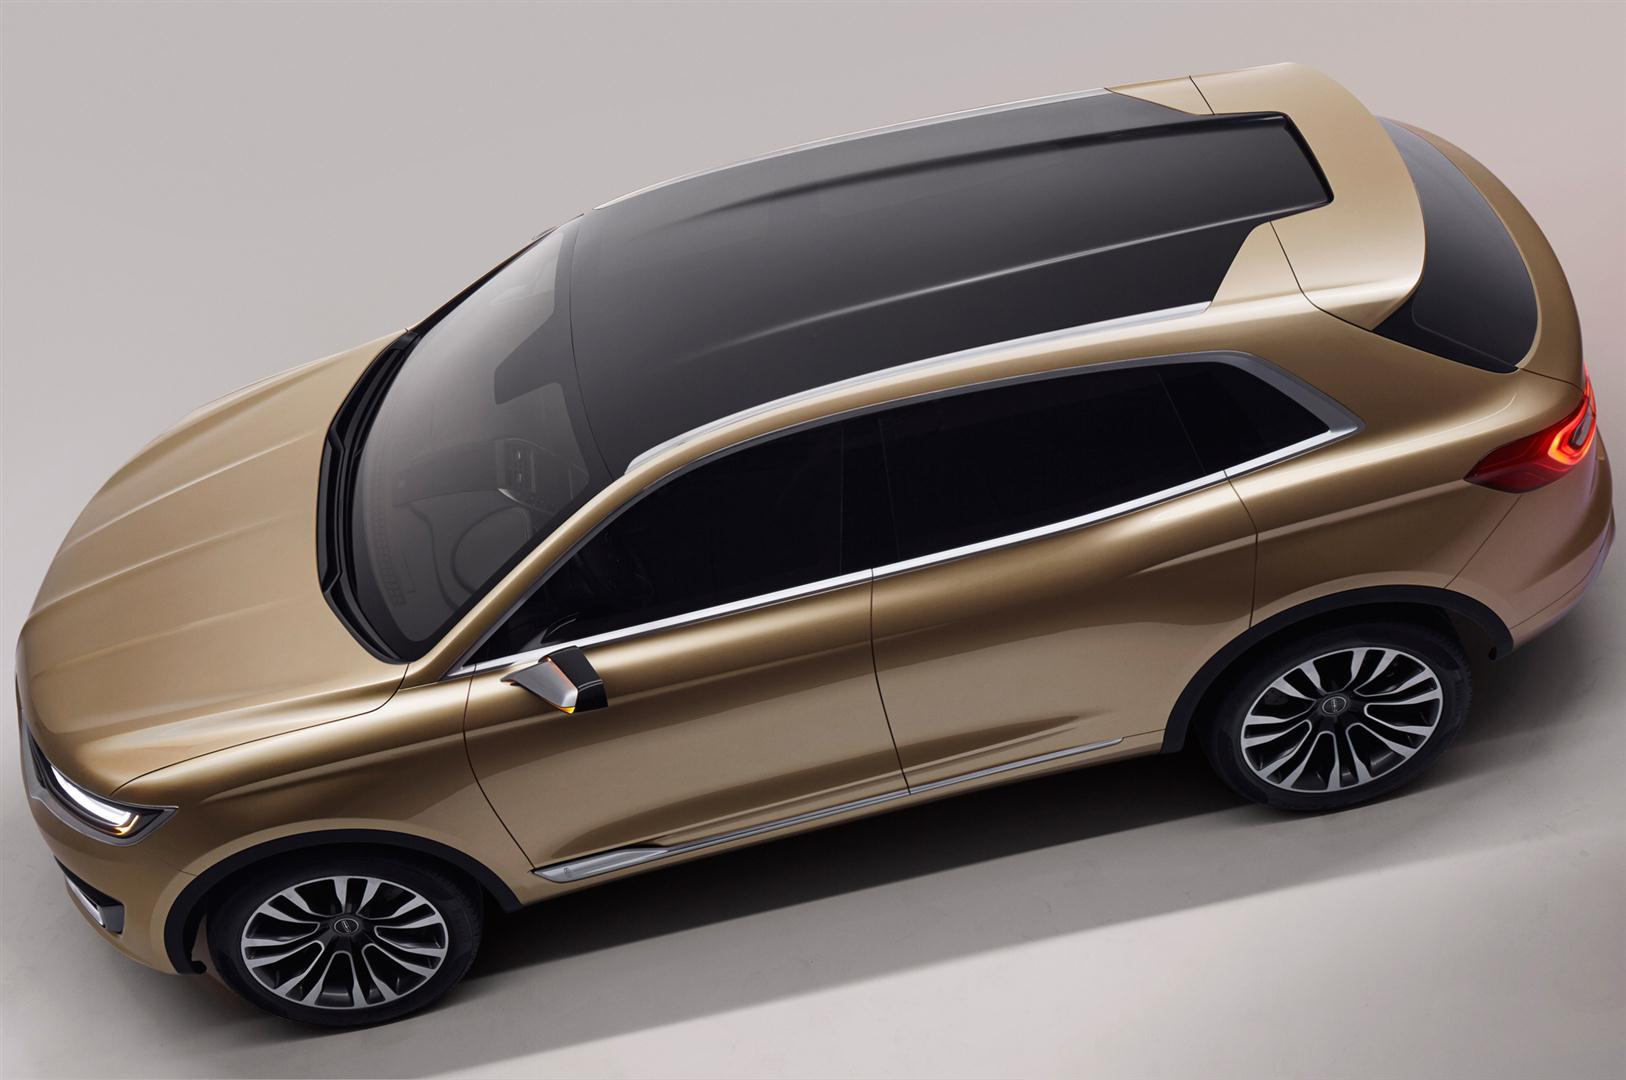 2018 Lincoln MKX Specs SUV Most Anticipated